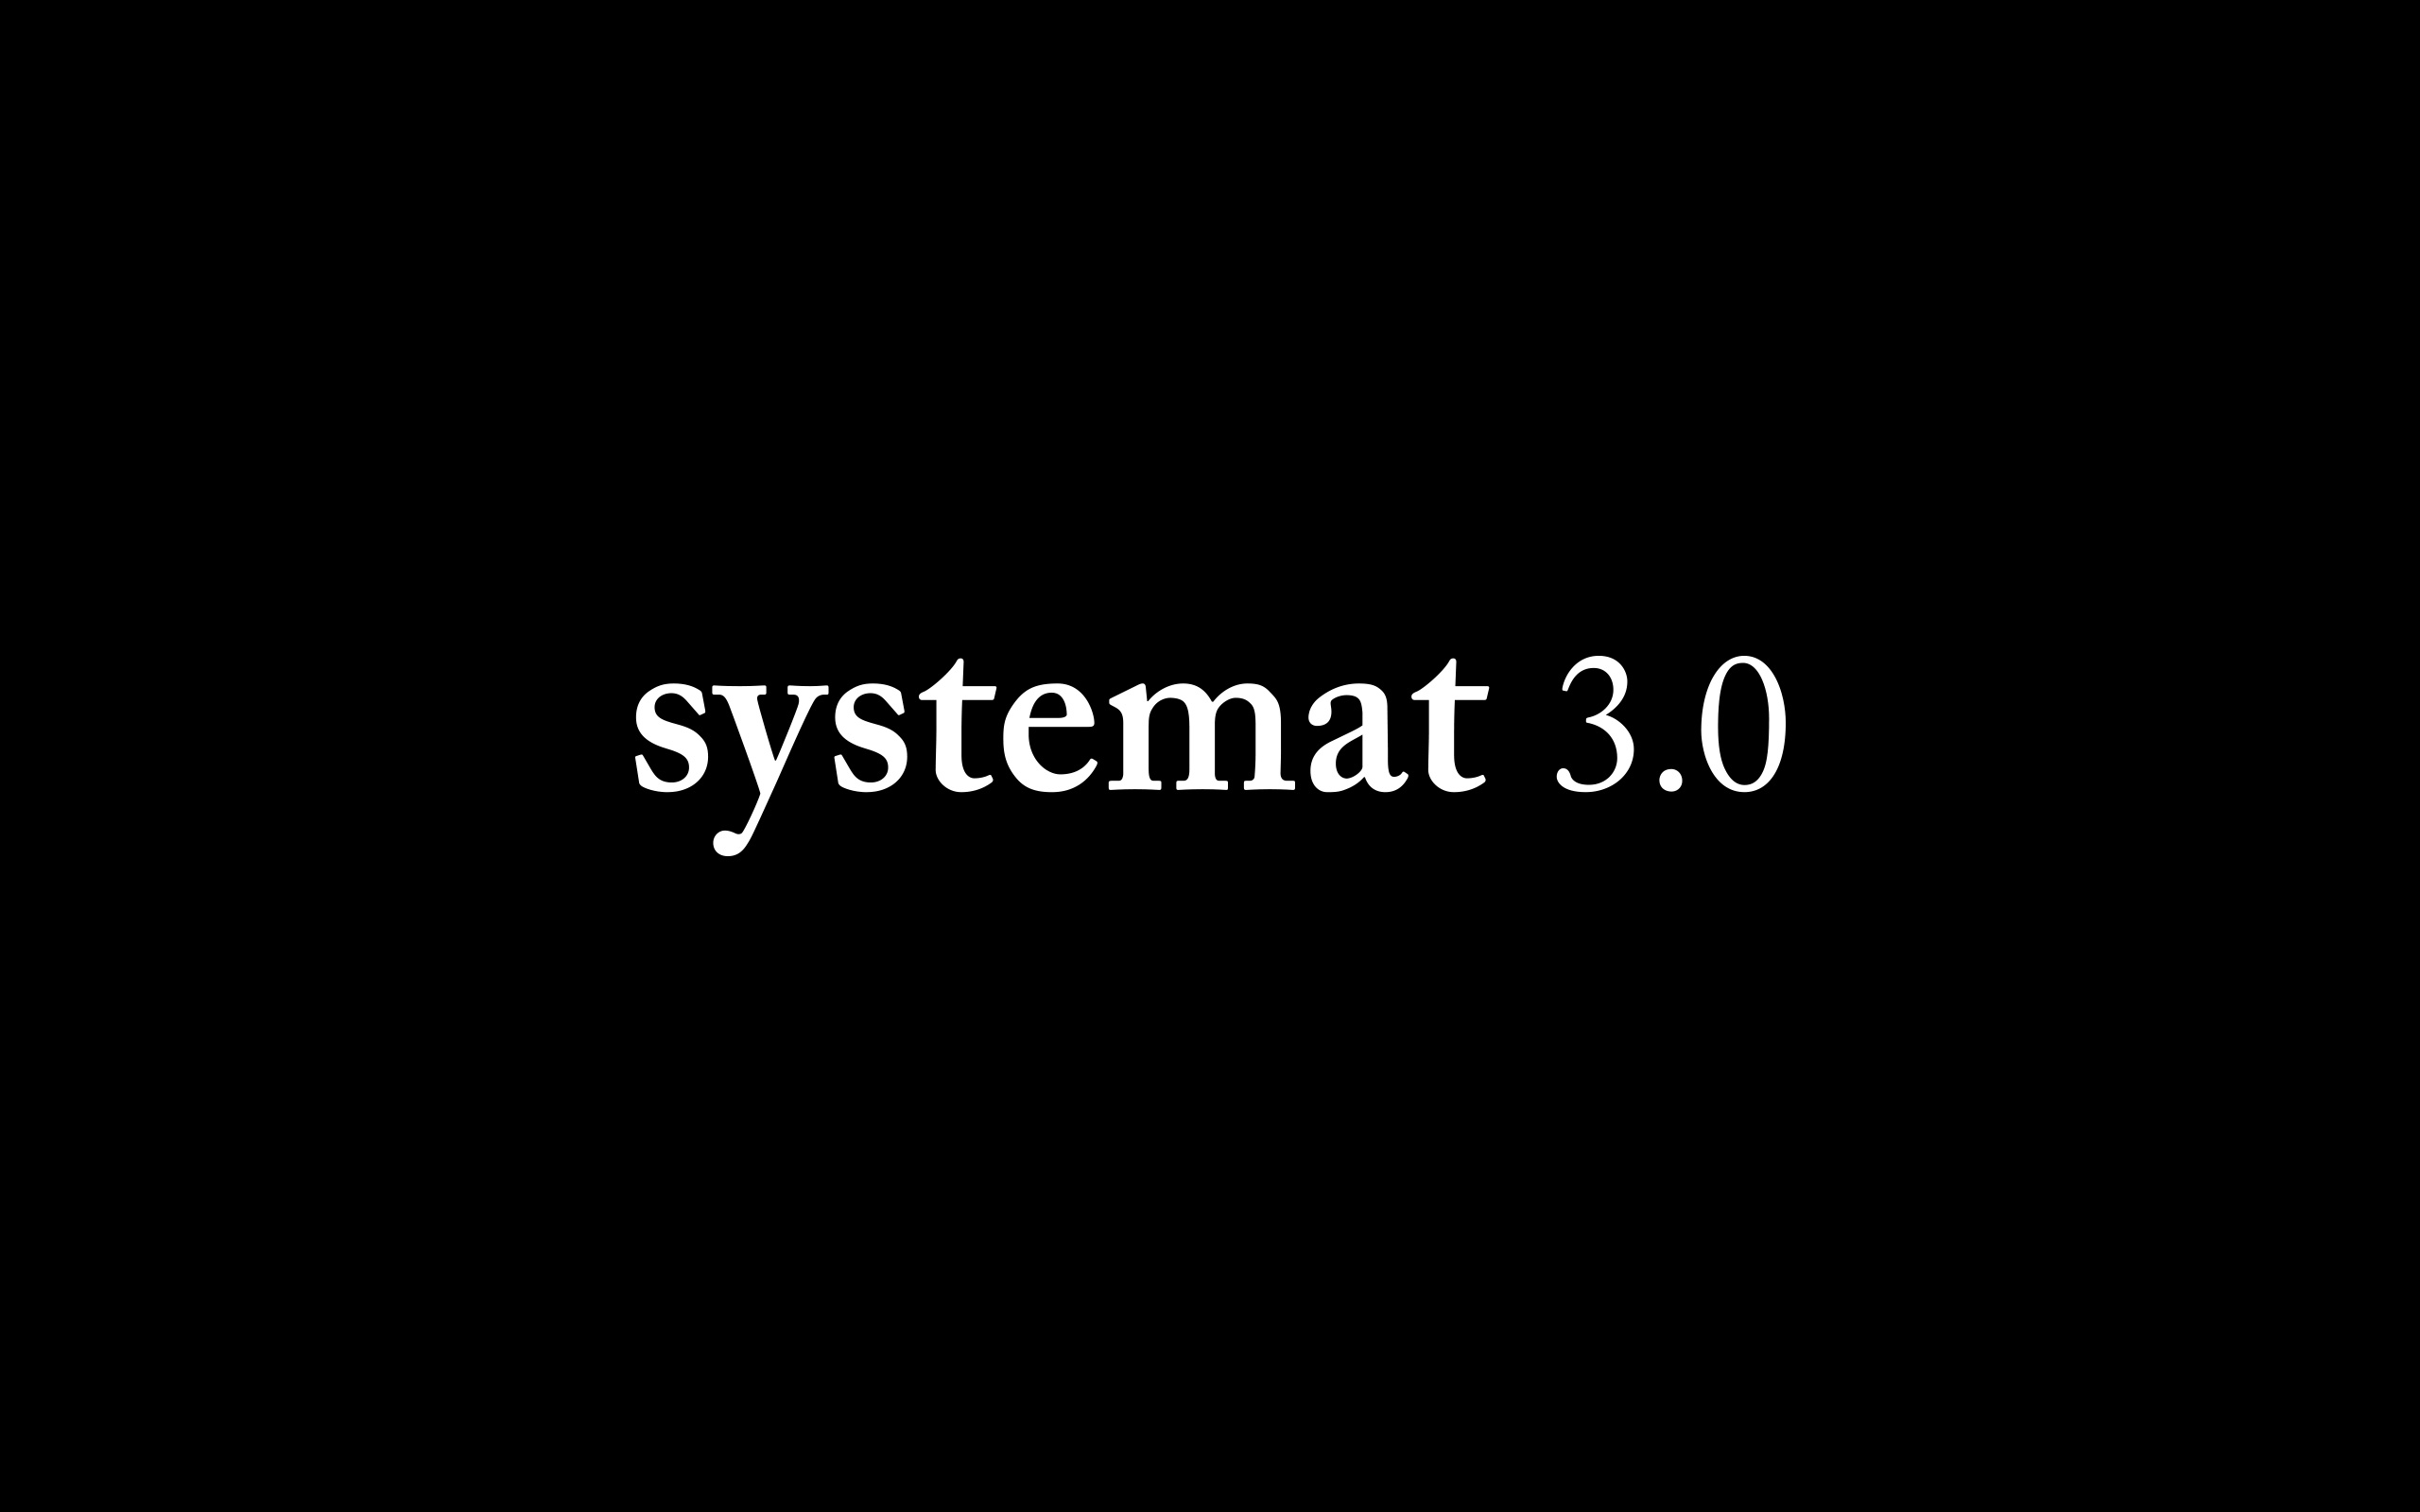 [Translate to Polski:] systemat 3.0